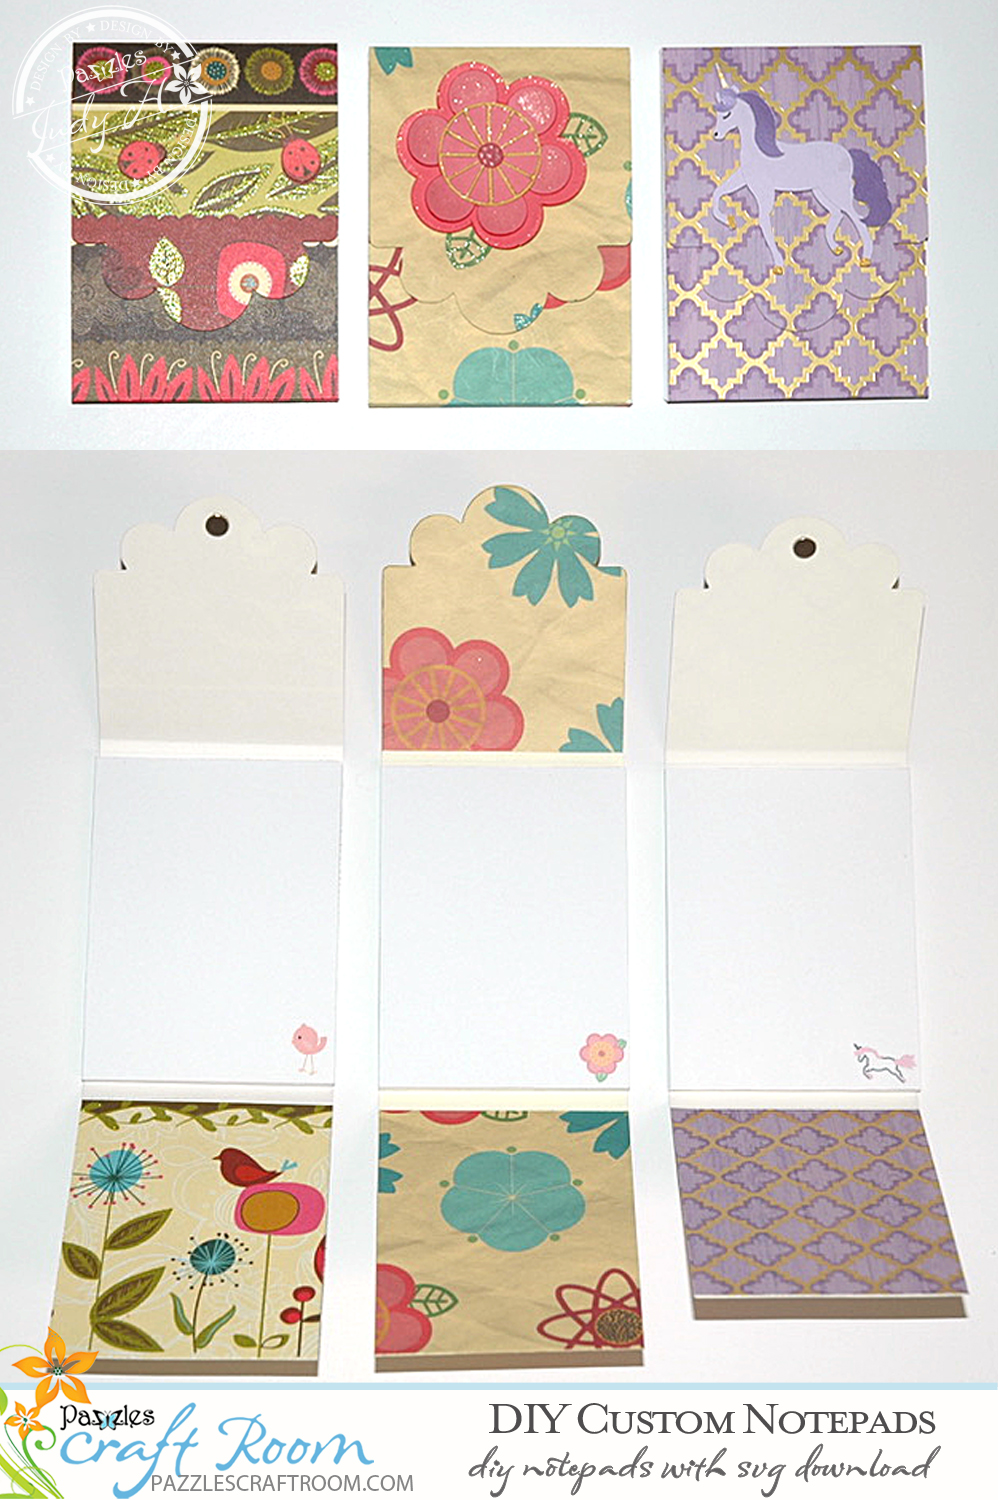 Pazzles DIY Custom Notepads with instant SVG download. Compatible with all major electronic cutters including Pazzles Inspiration, Cricut, and Silhouette Cameo. Design by Judy Hanson.